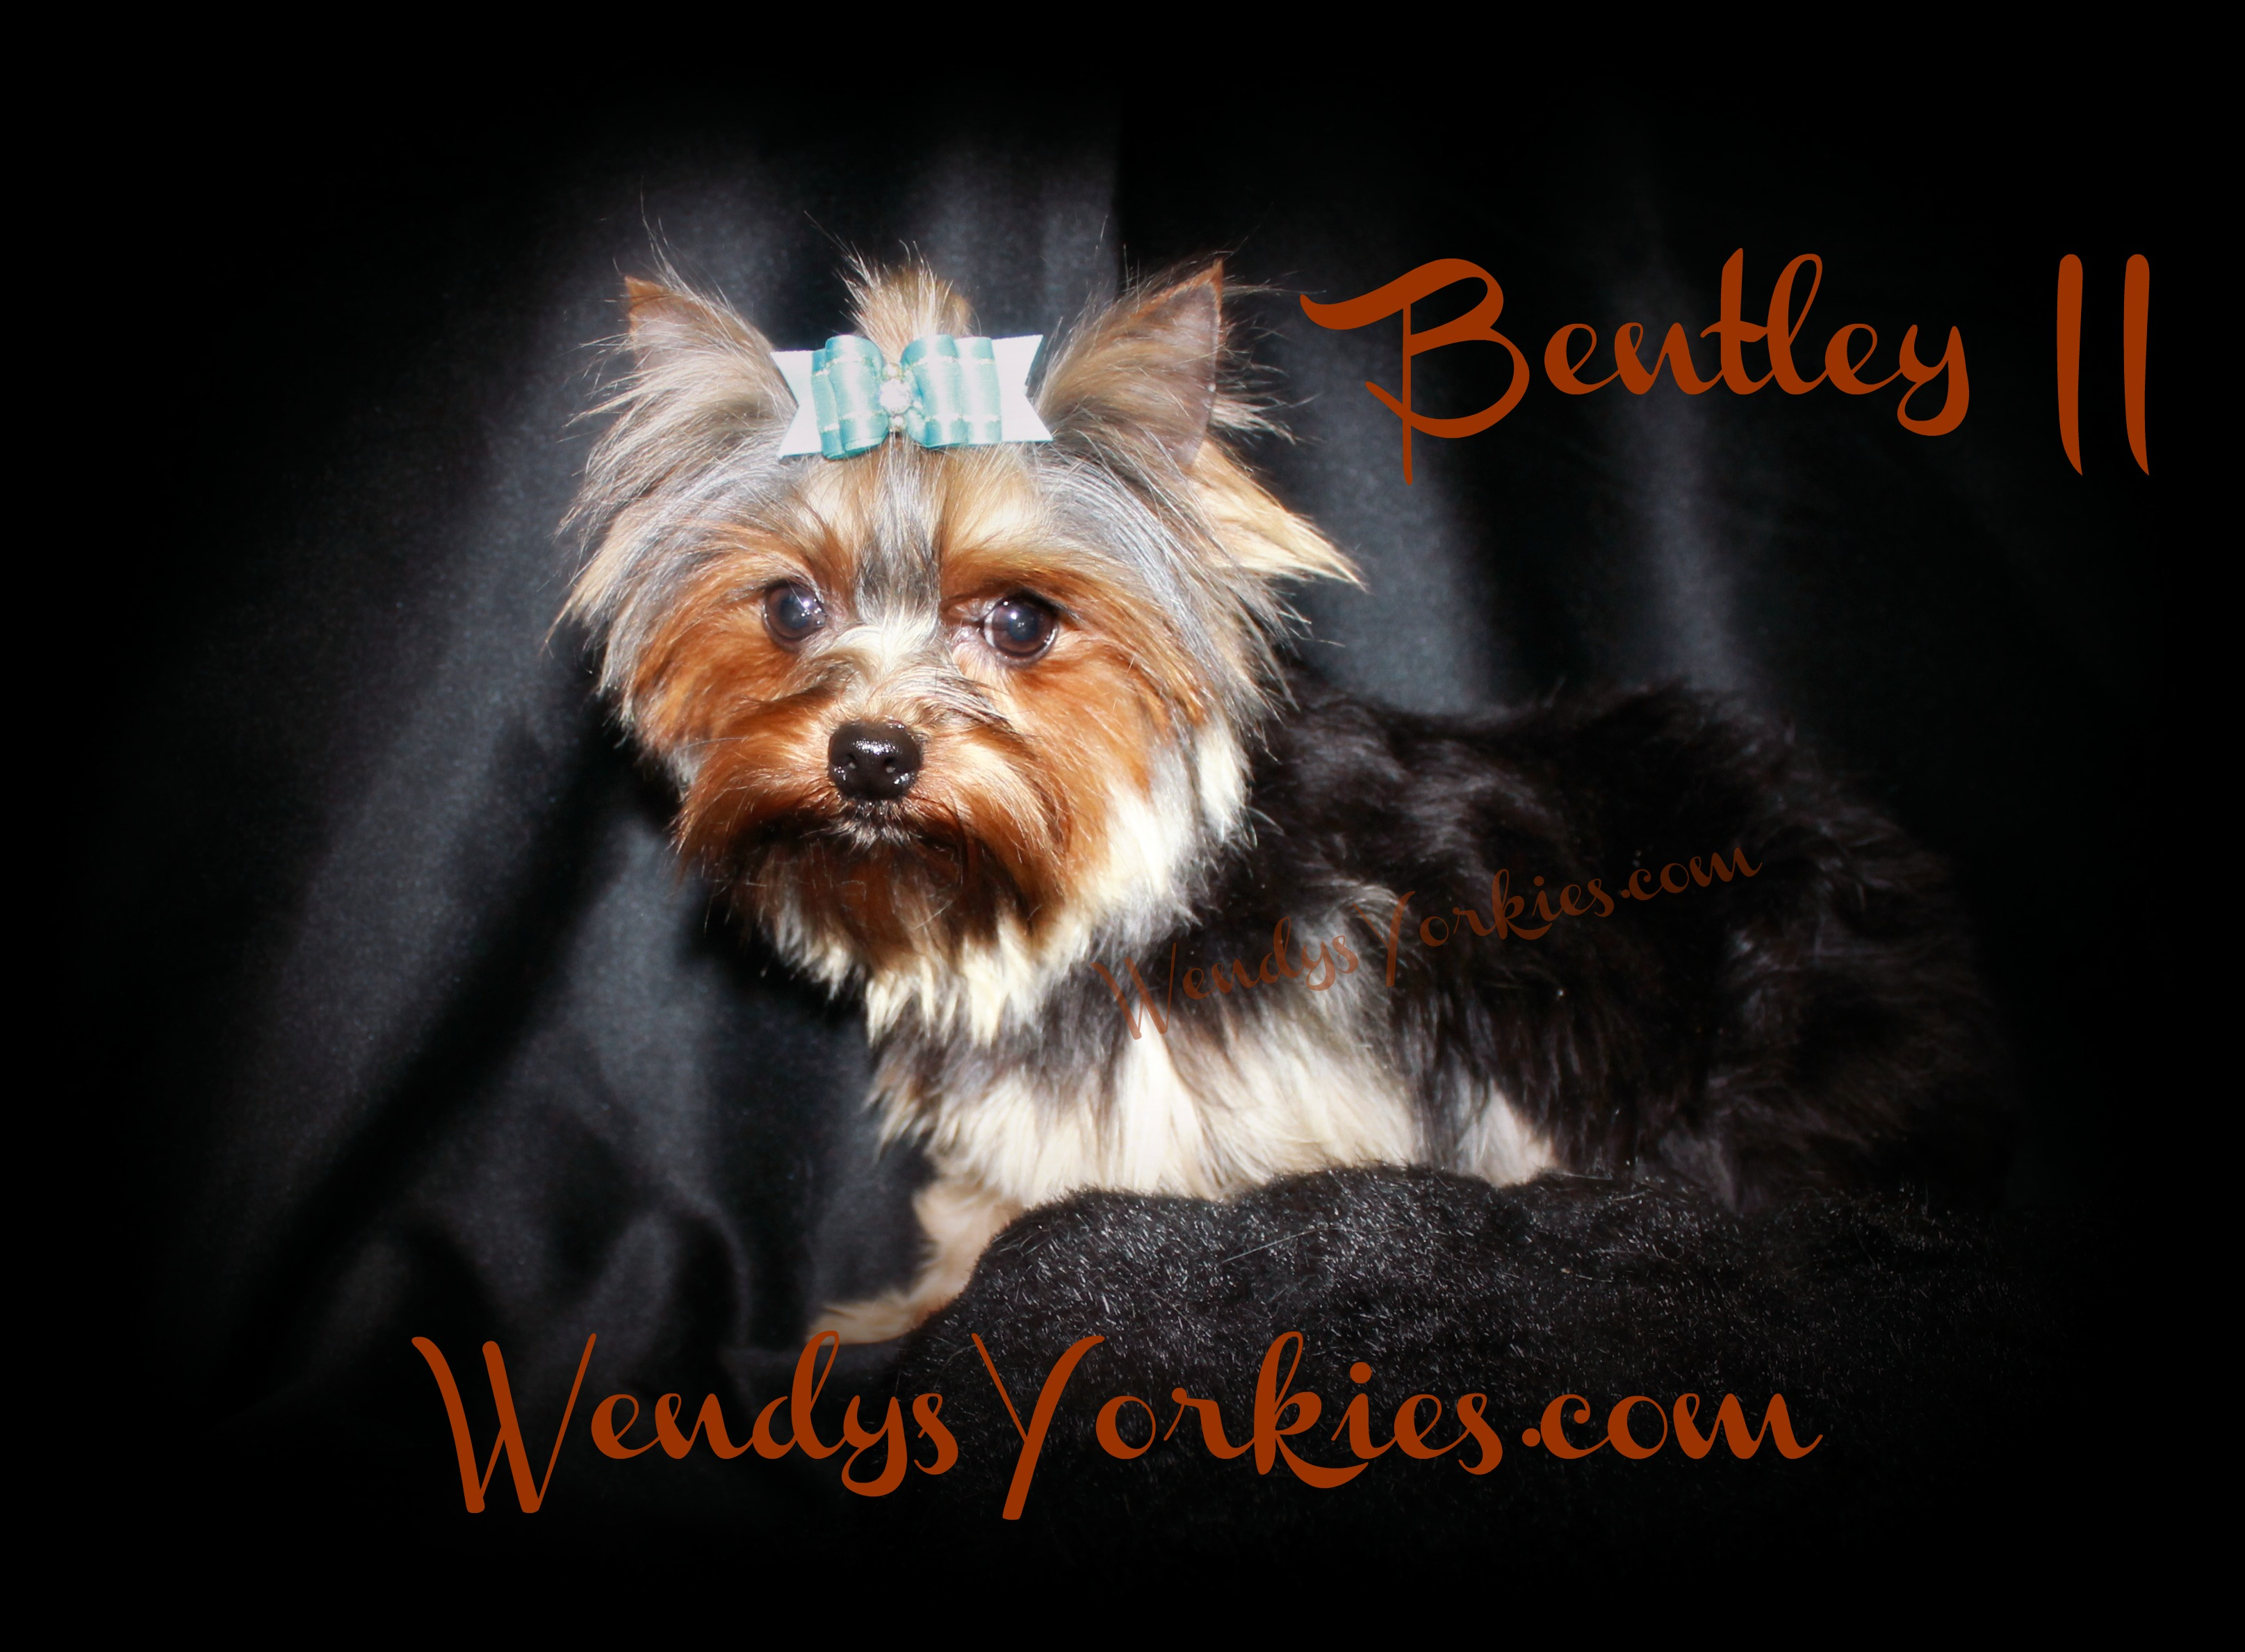 Teacup Male Yorkie, WendysYorkies.com, Yorkie breeder in Texas, Bentley II